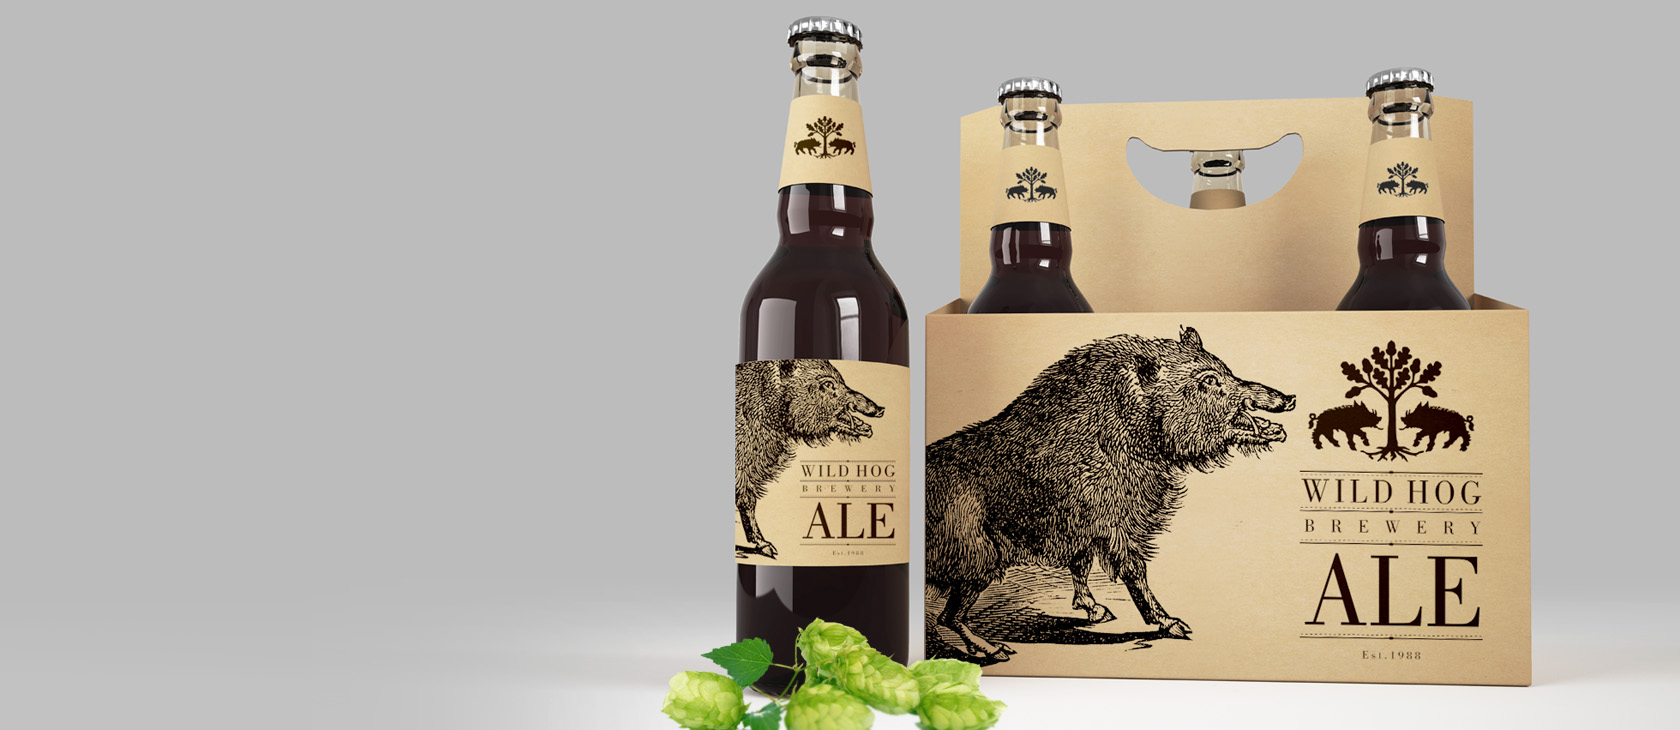 Wild Hog Brewery – branding a packaging